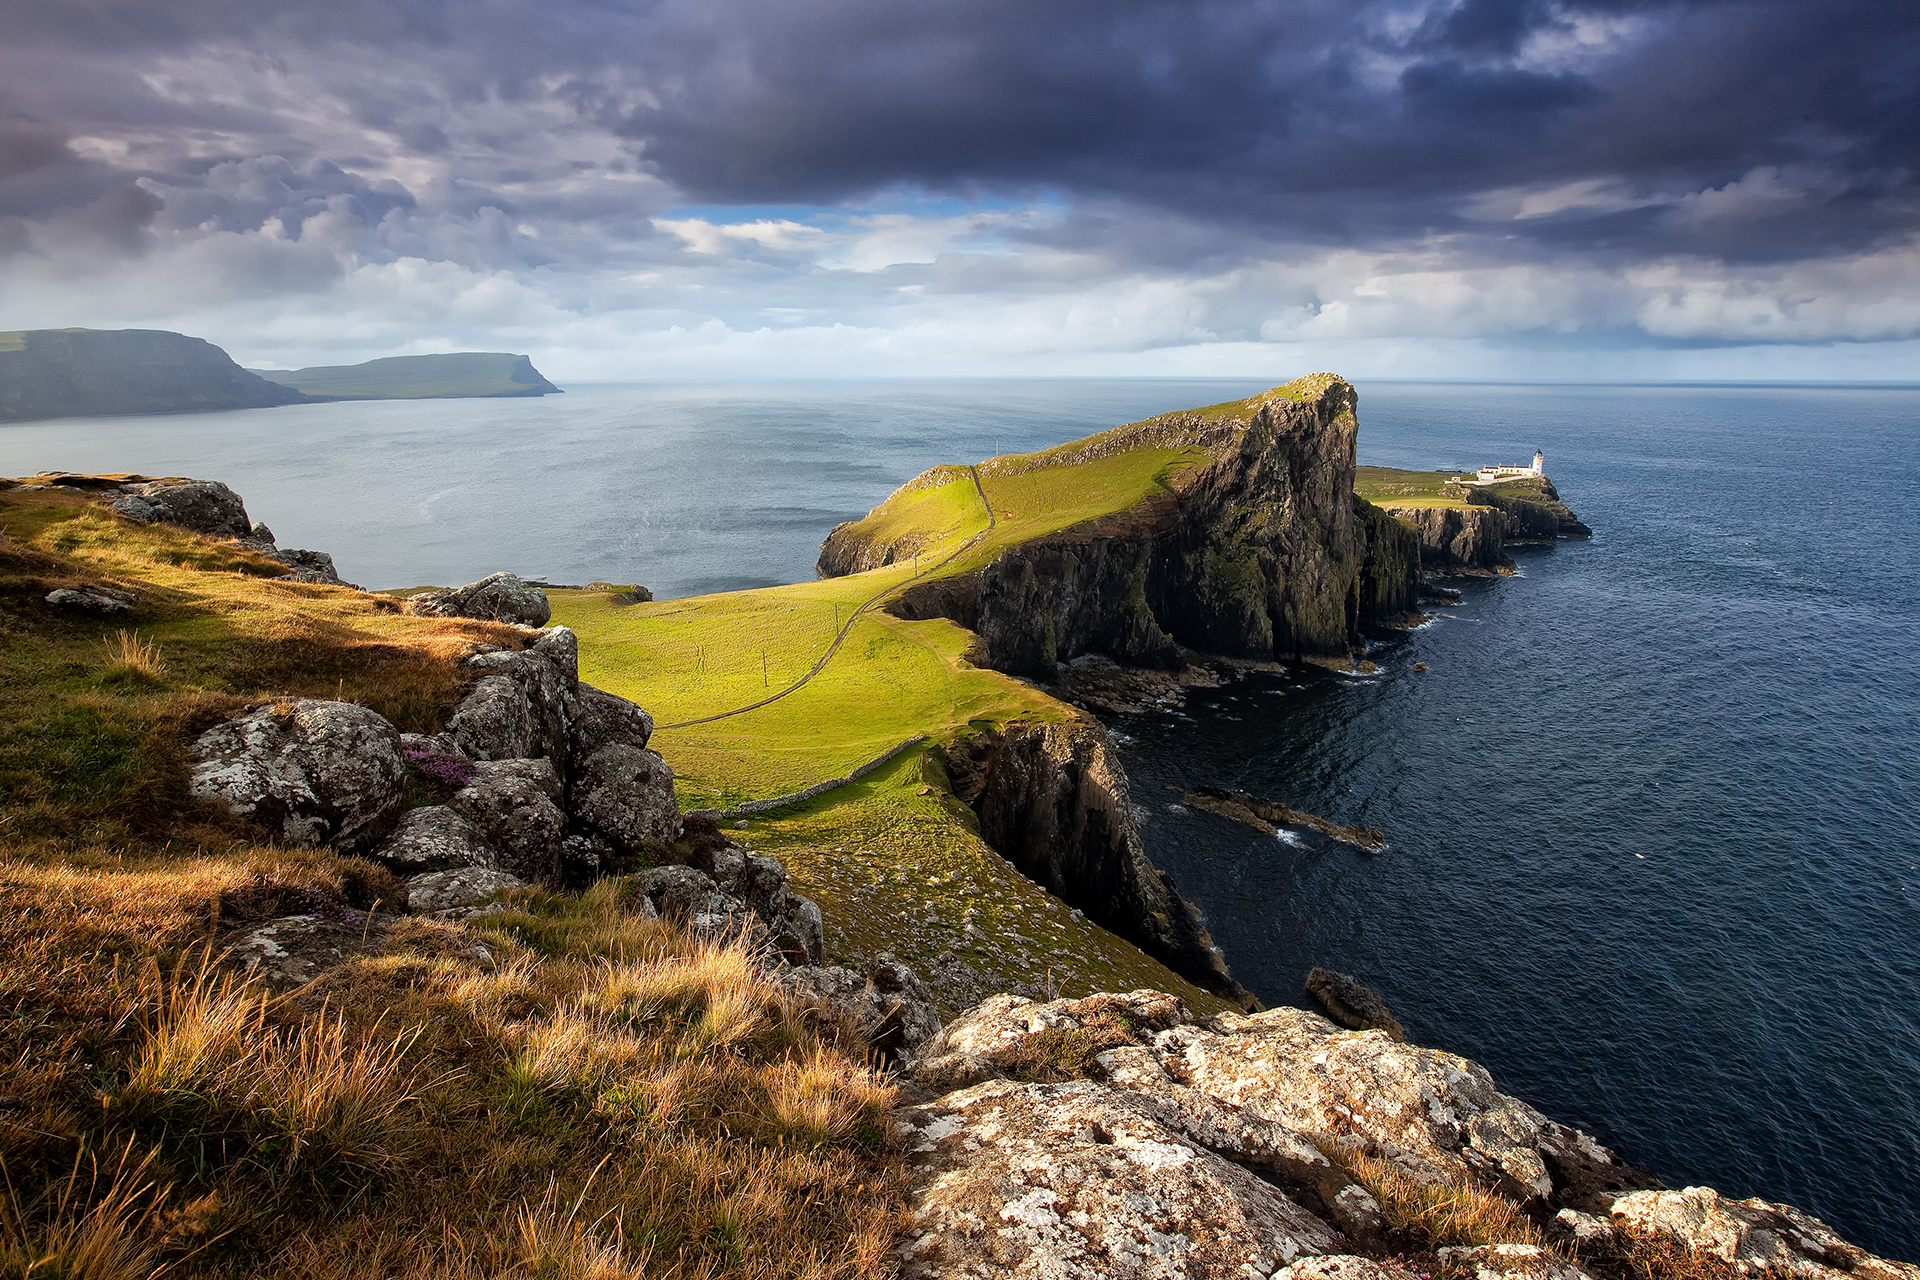 VAUDE-Visions-Wallpapers-for-free-Daniel-Kreher-Scotland-Neist-Point-Isle-of-Skye-wallpaper-wp48011679